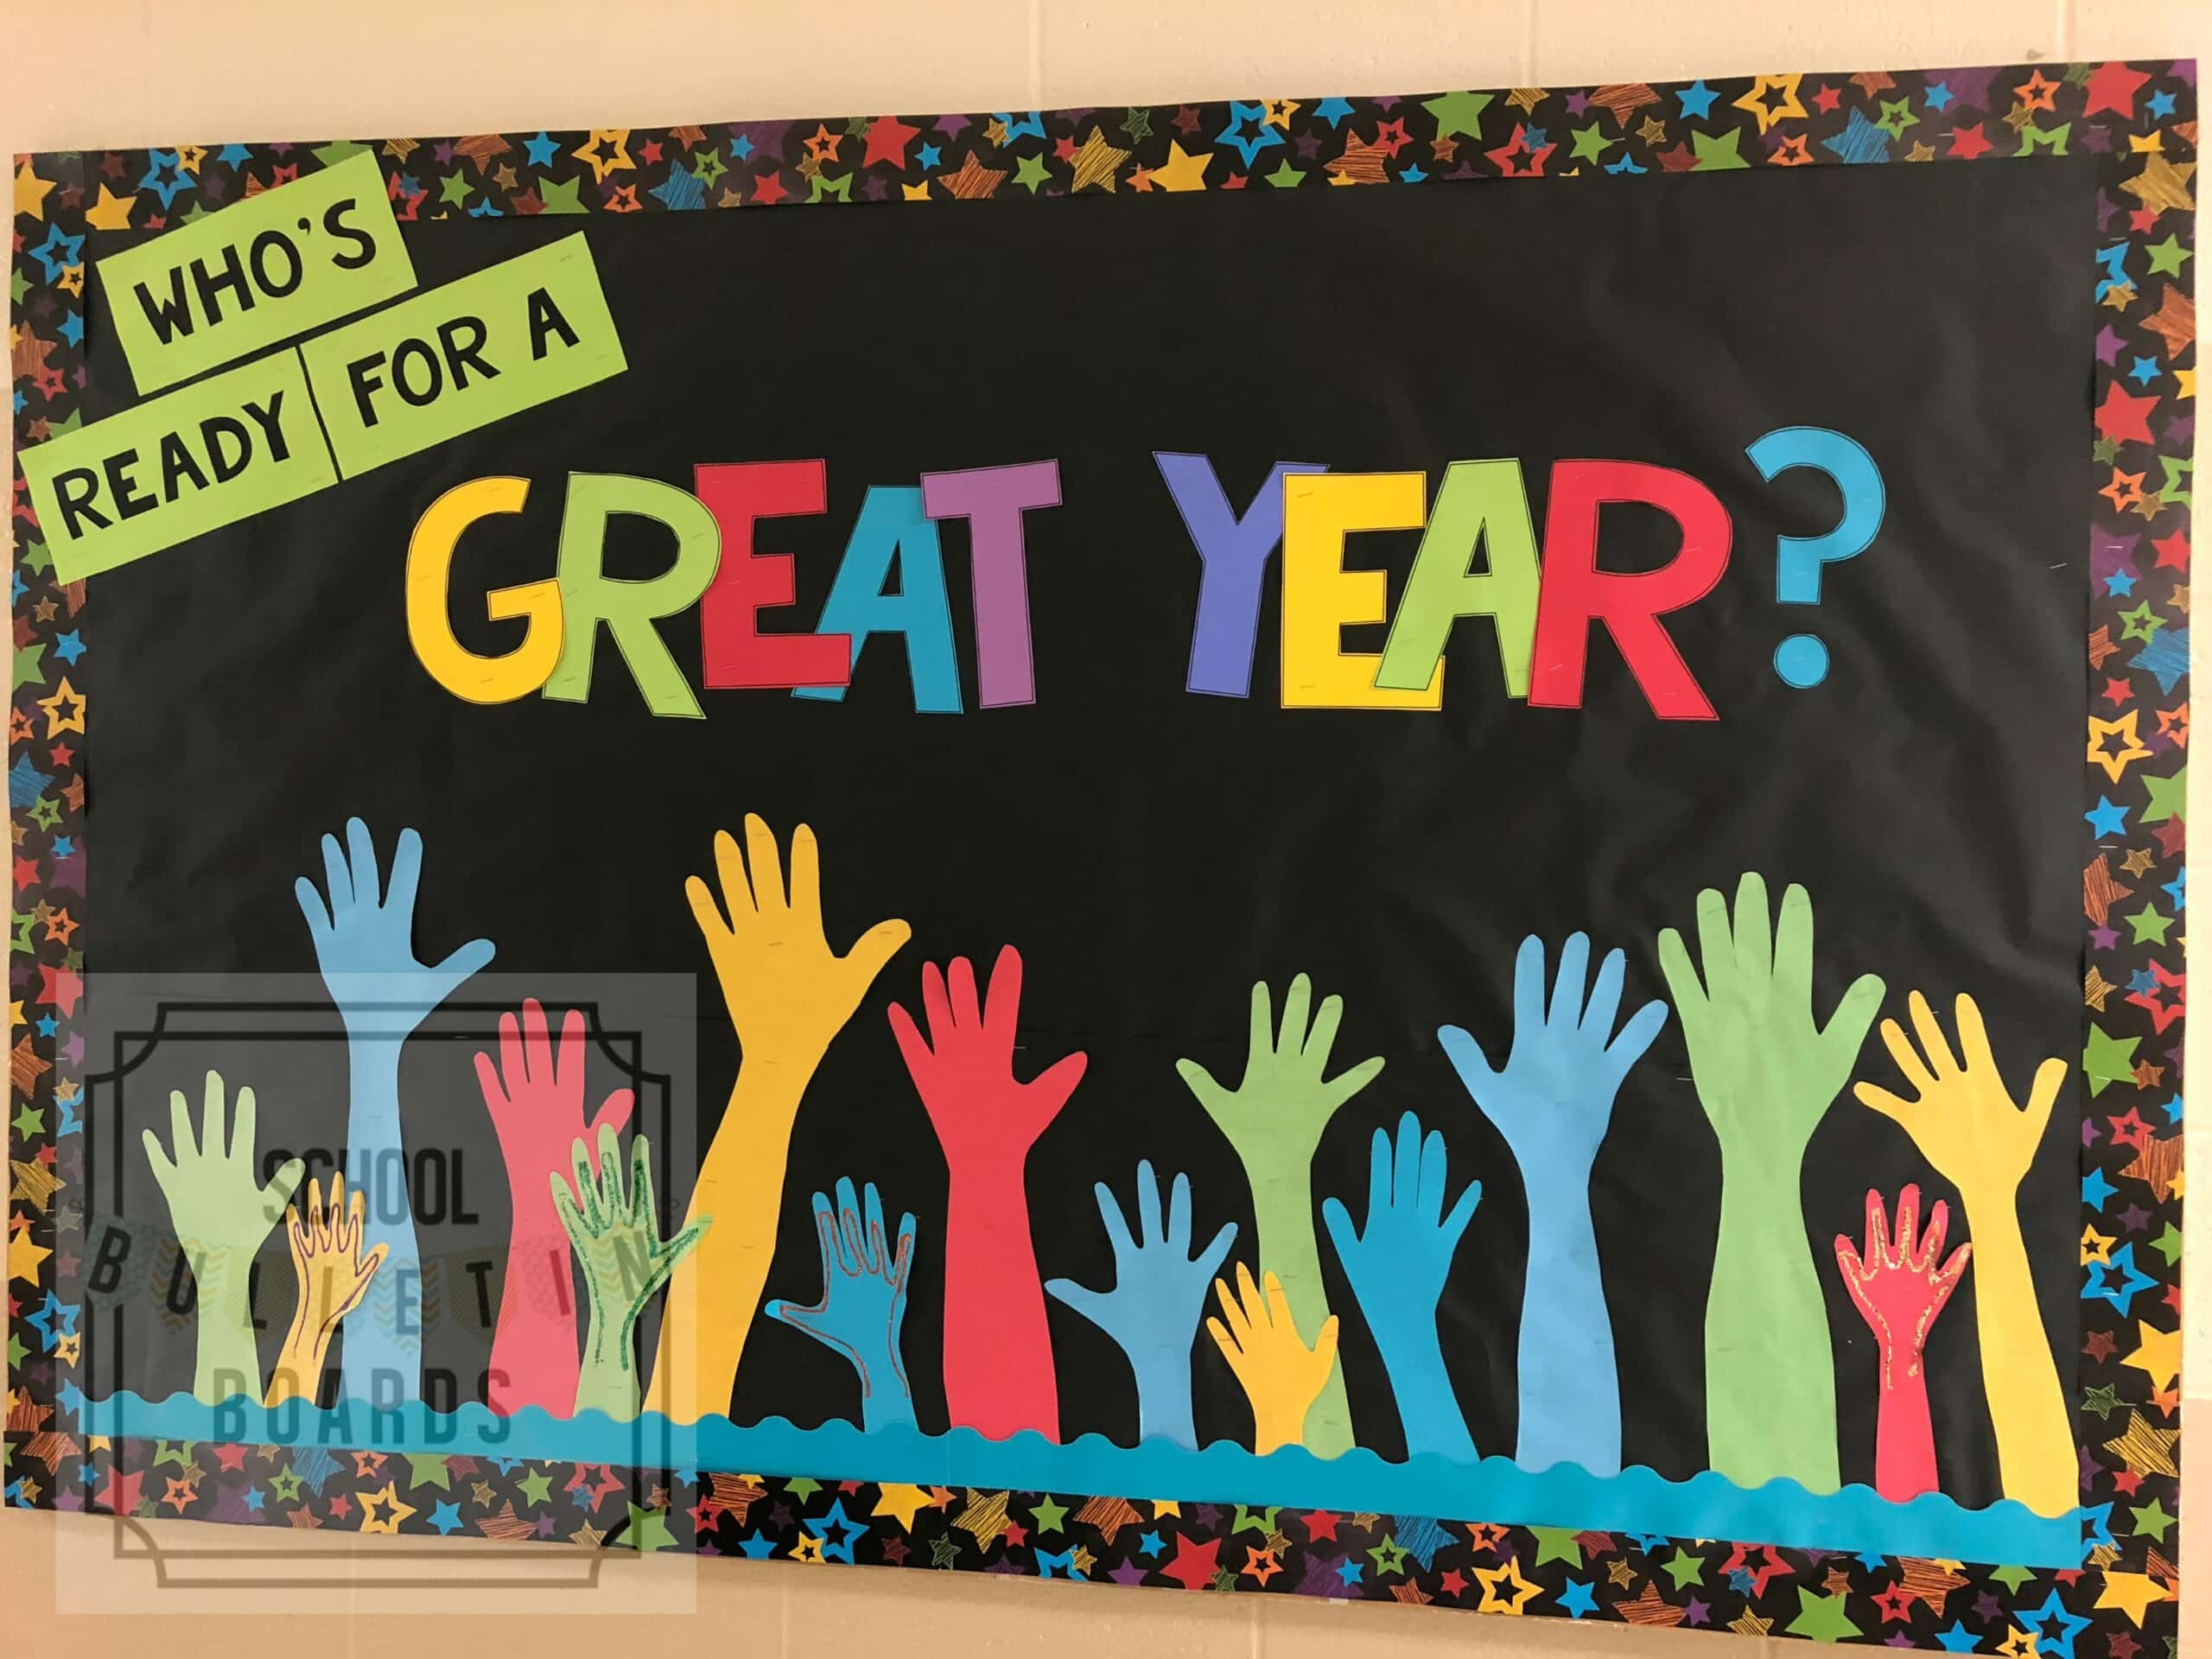 Who Is Ready For A Great Year